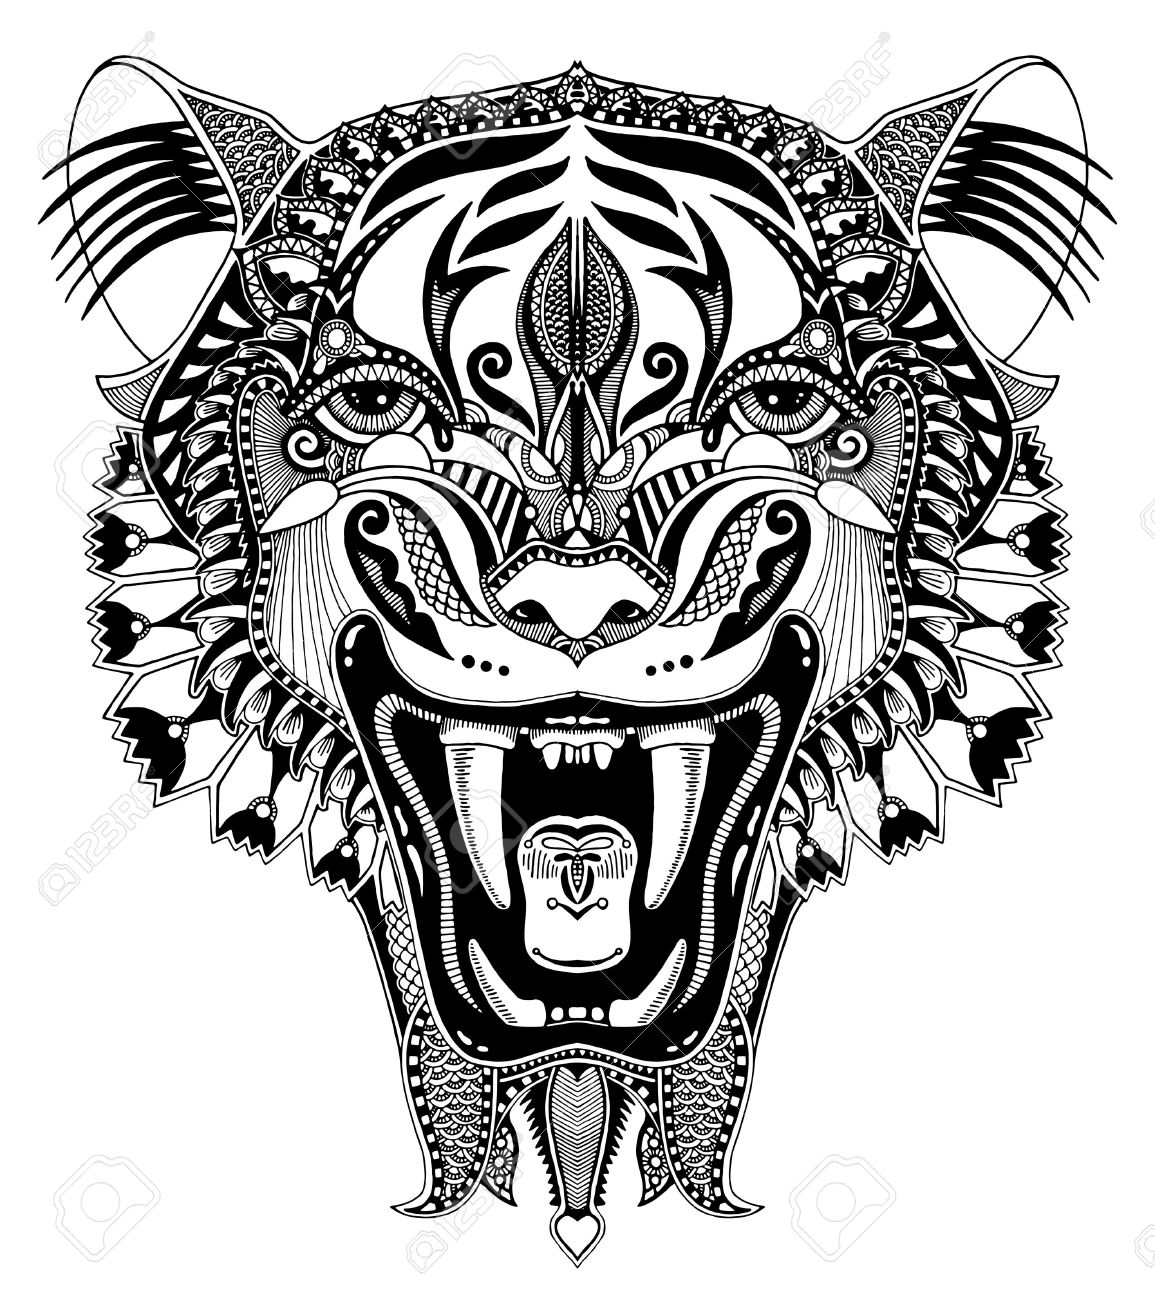 1155x1300 Original Black And White Head Tiger Drawing With The Opened Fall